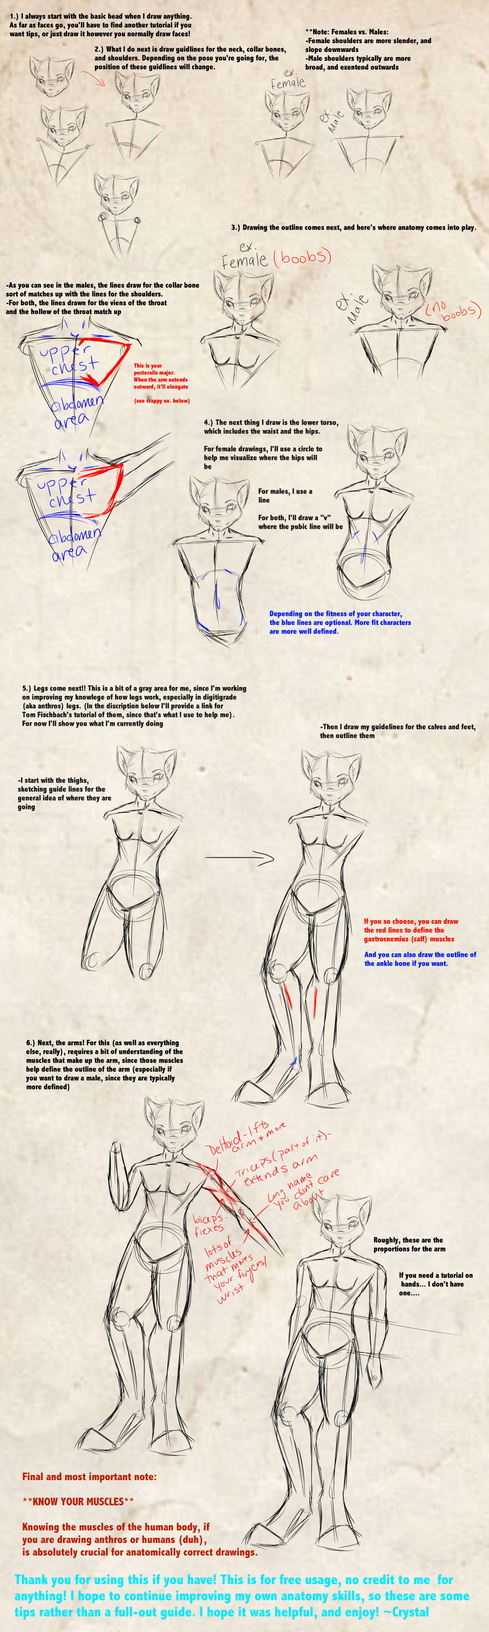 How to anatomy, tips by CrystalRaven98